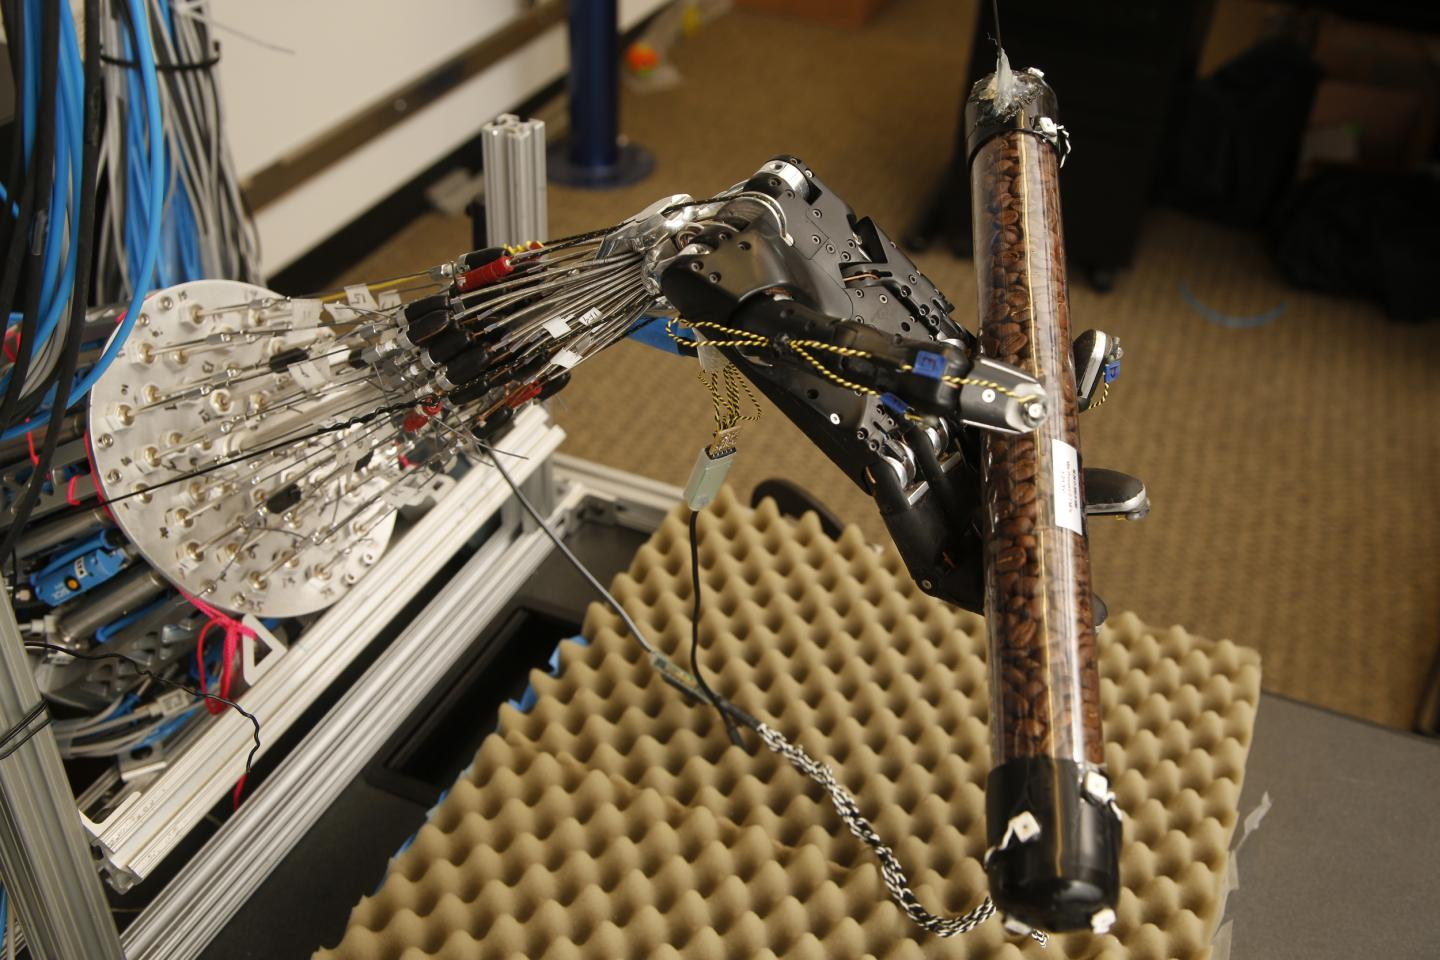 This five-fingered robot hand is close to human in functionality